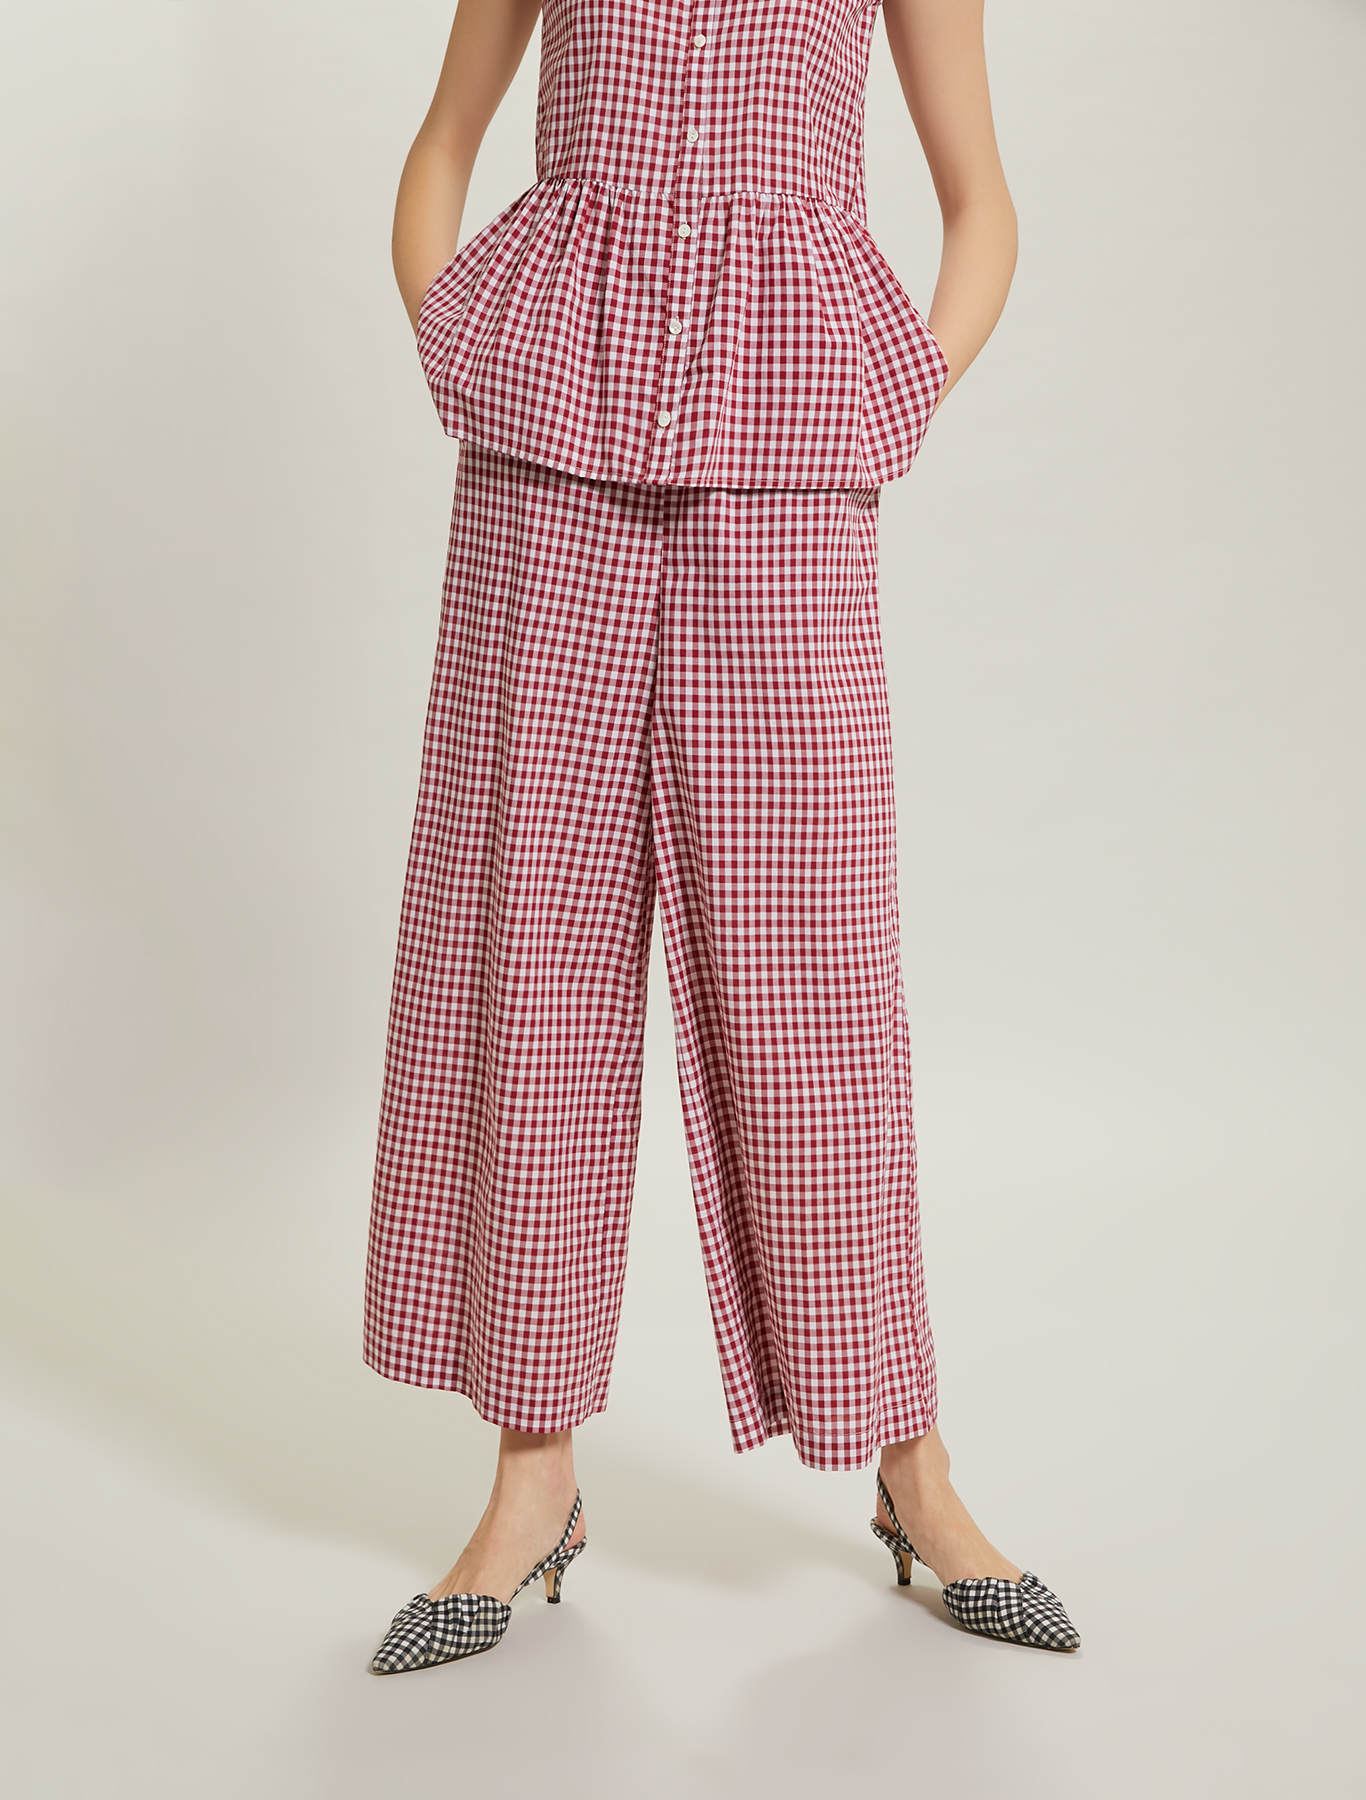 Gingham check trousers - fuchsia pattern - pennyblack